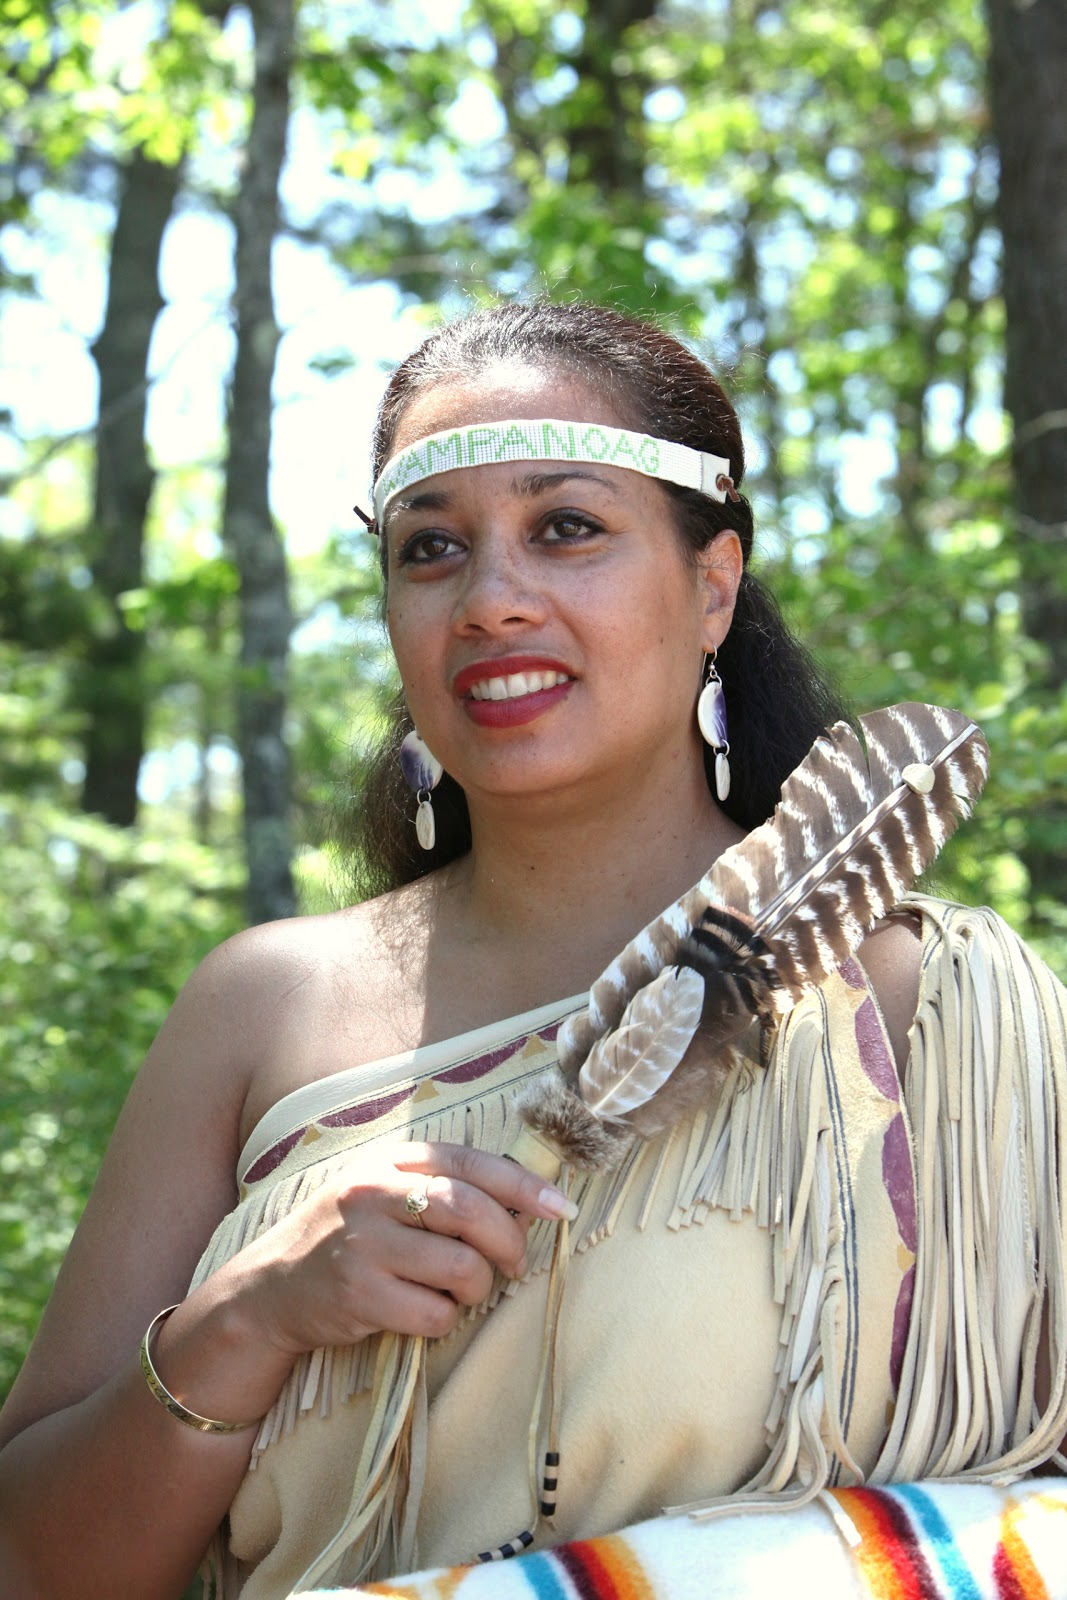 mashpee hindu single men Mashpee / ˈ m æ ʃ p i / is a town in barnstable county, massachusetts, united states, on cape cod the population was 14,006 as of 2010 [1] it is the site of the headquarters and most members of the federally recognized mashpee wampanoag tribe , one of two wampanoag.